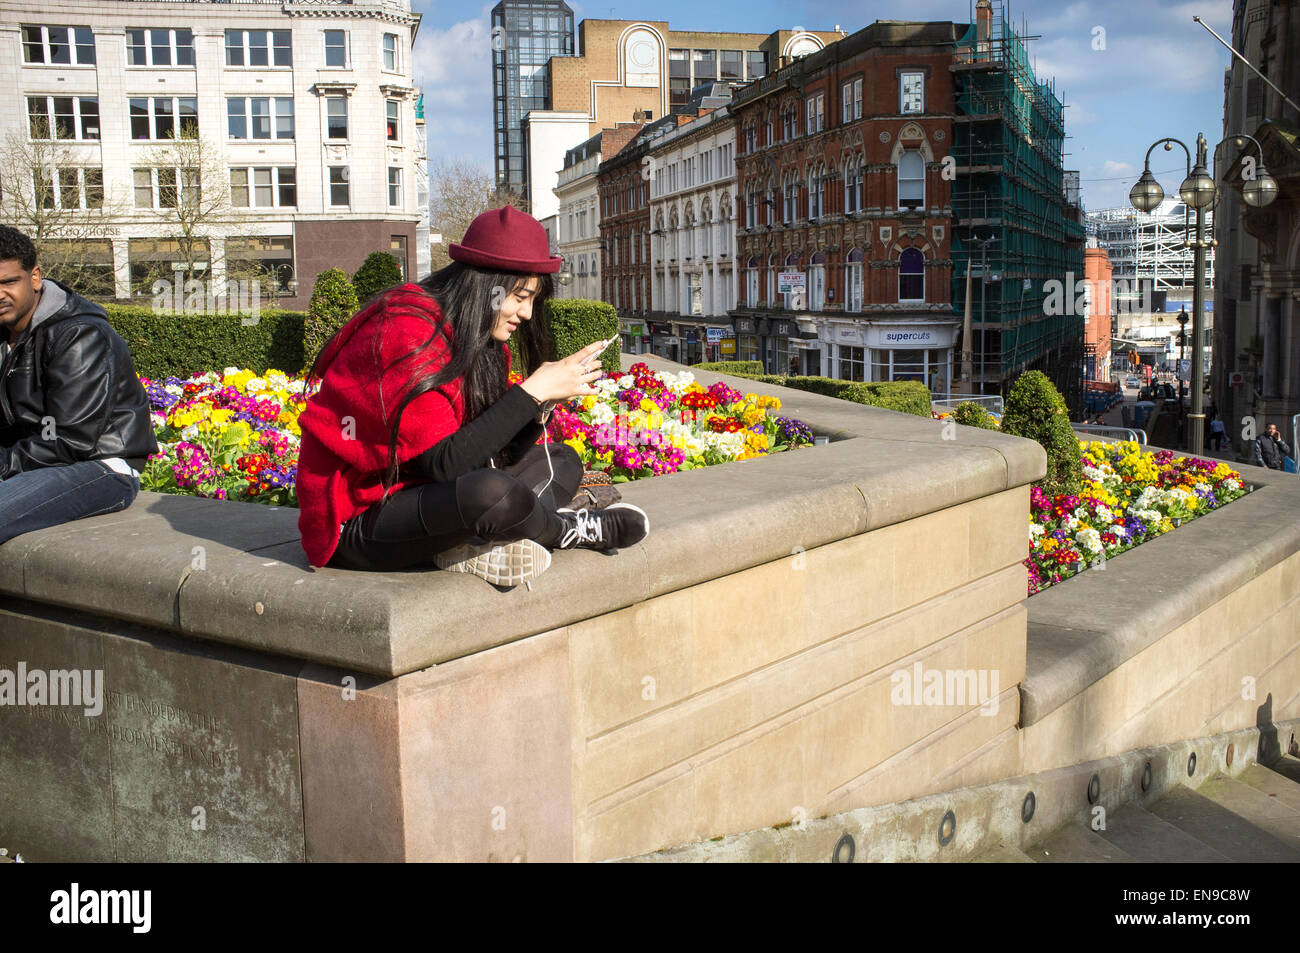 Young Asian woman/girl absorbed using a smart phone and oblivious to city life - Stock Image